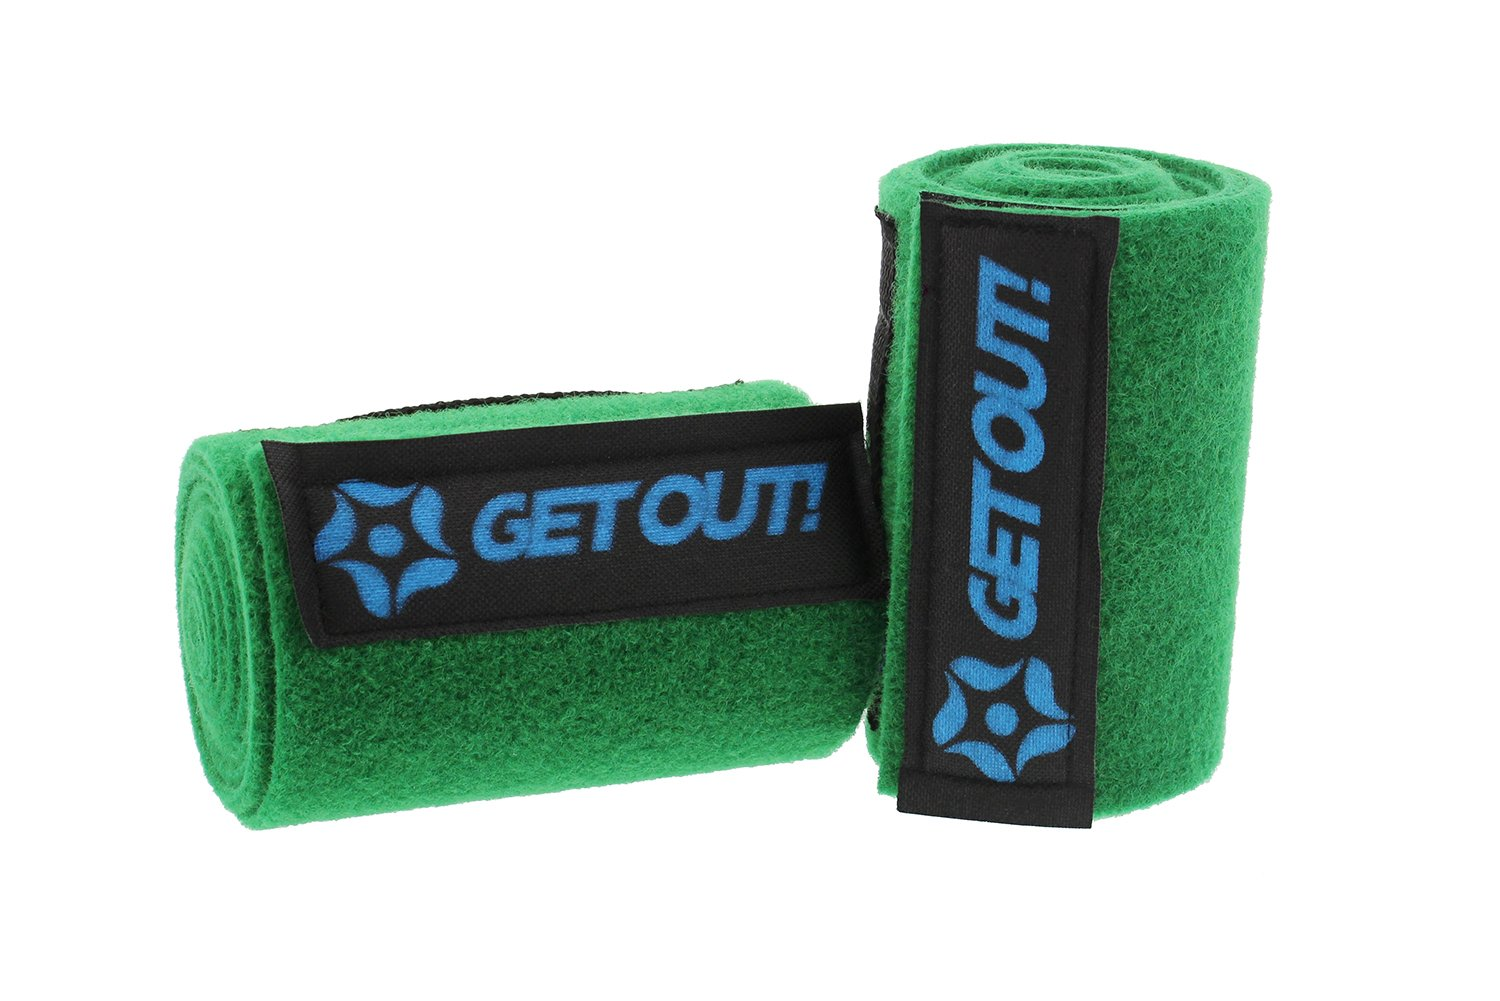 Get Out!! Tree Protector Wrap 2-Pack, 40'' x 6'' Inches - Tree Guards for Classic Slackline Rope or Hammock